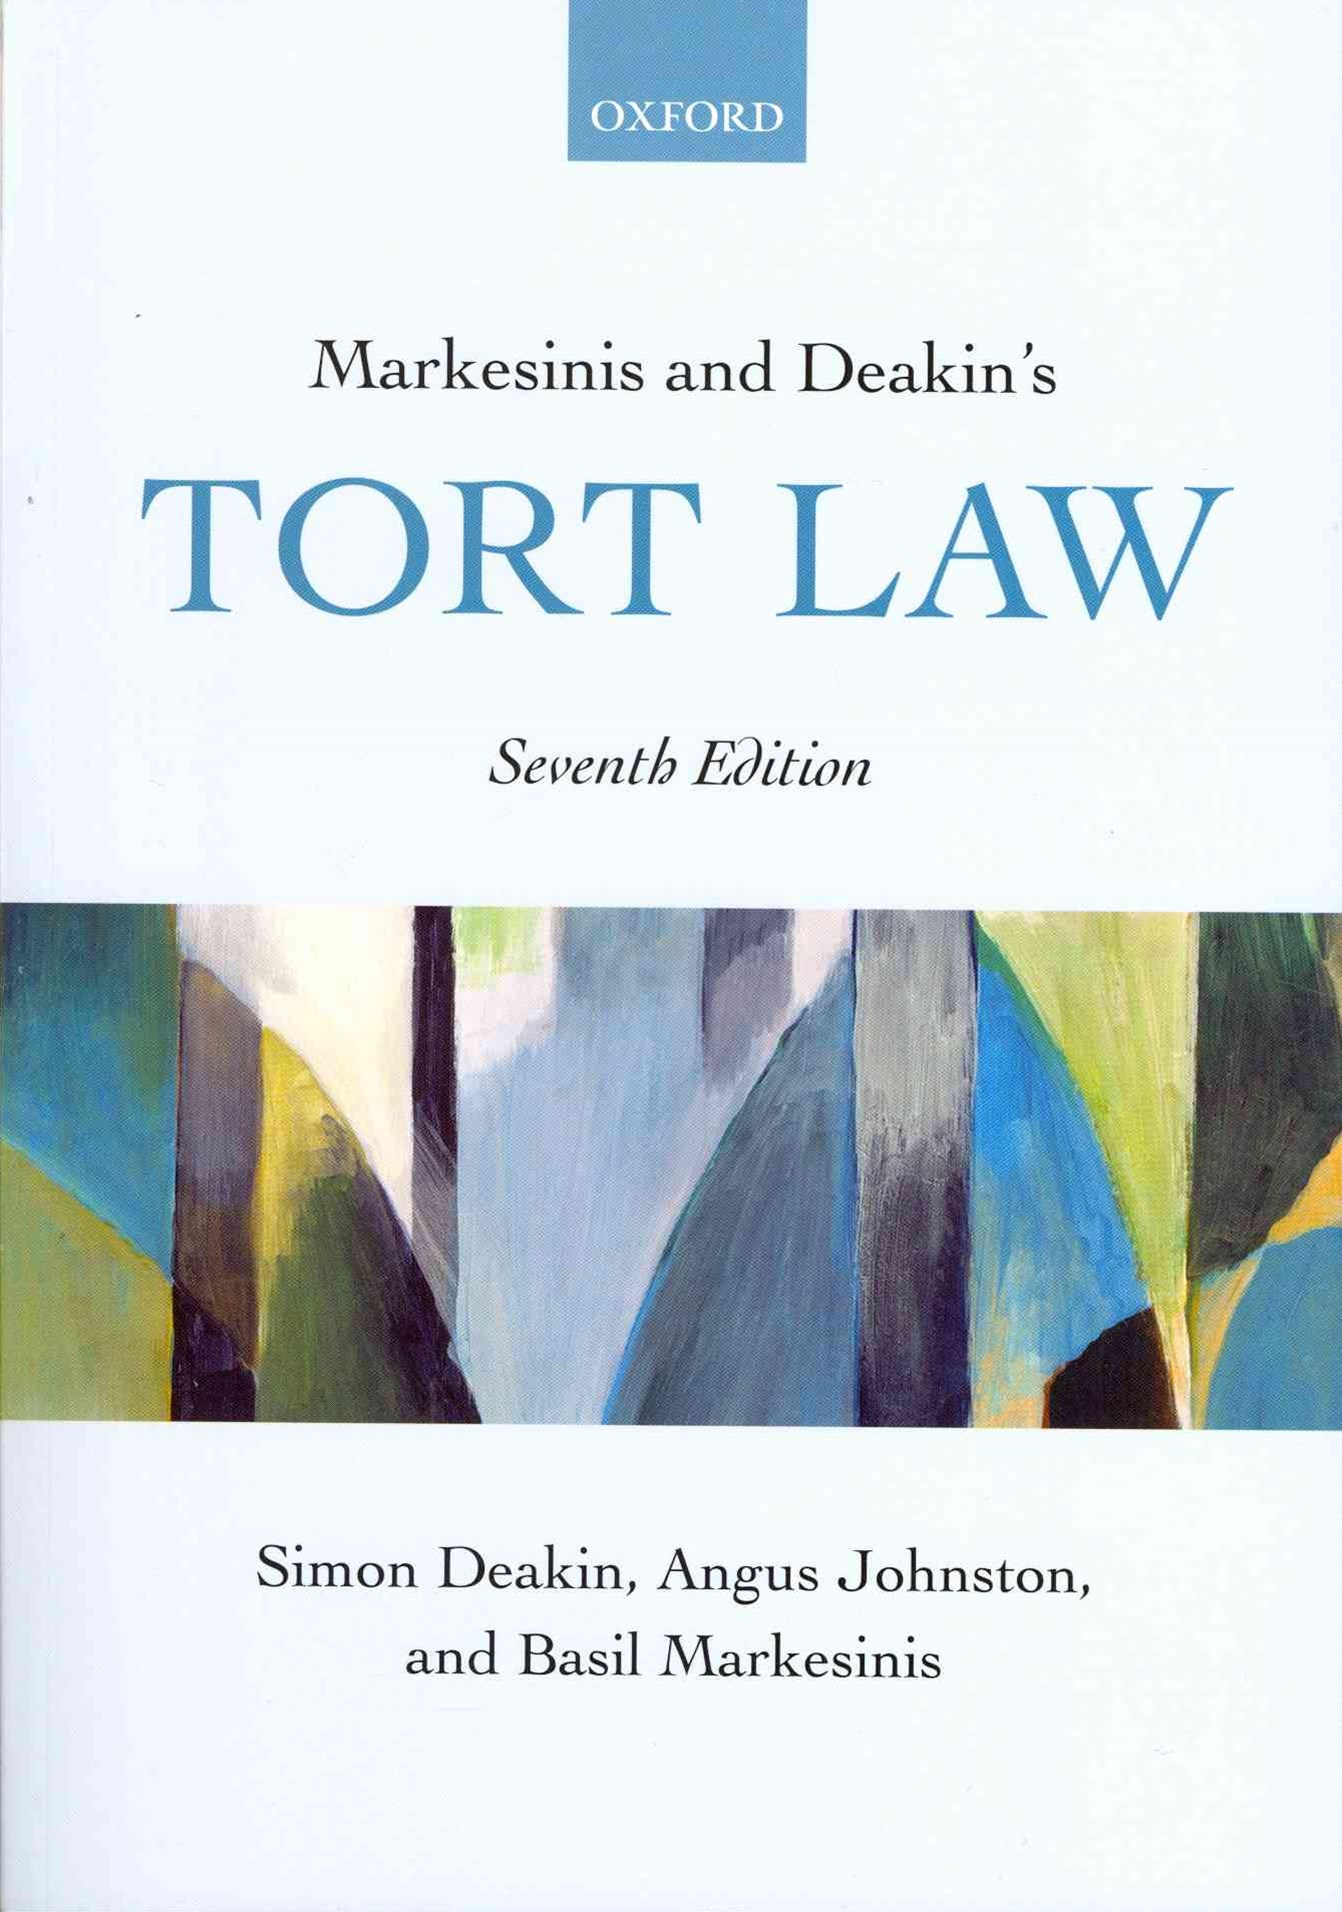 Markesinis and Deakin's Tort Law